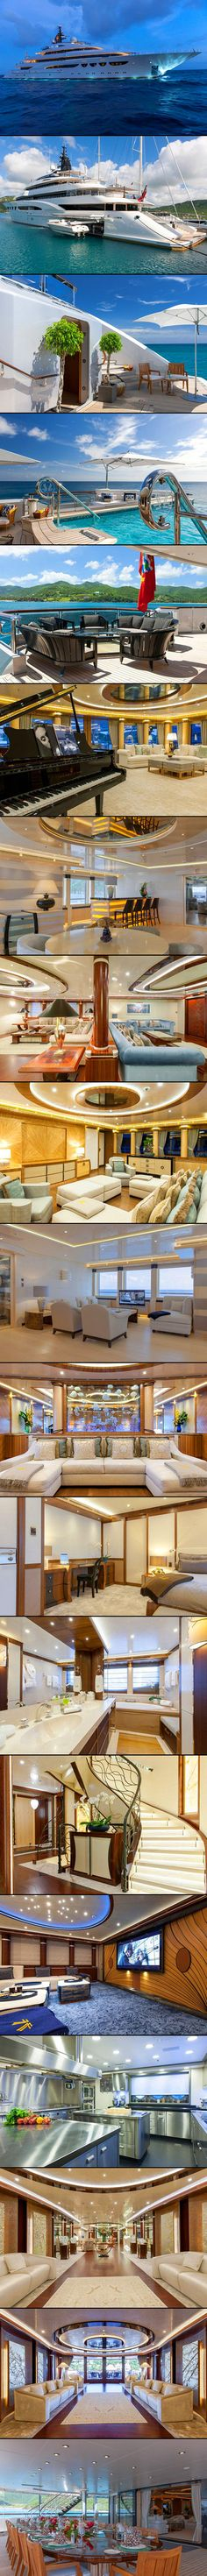 Luxury Yacht Life